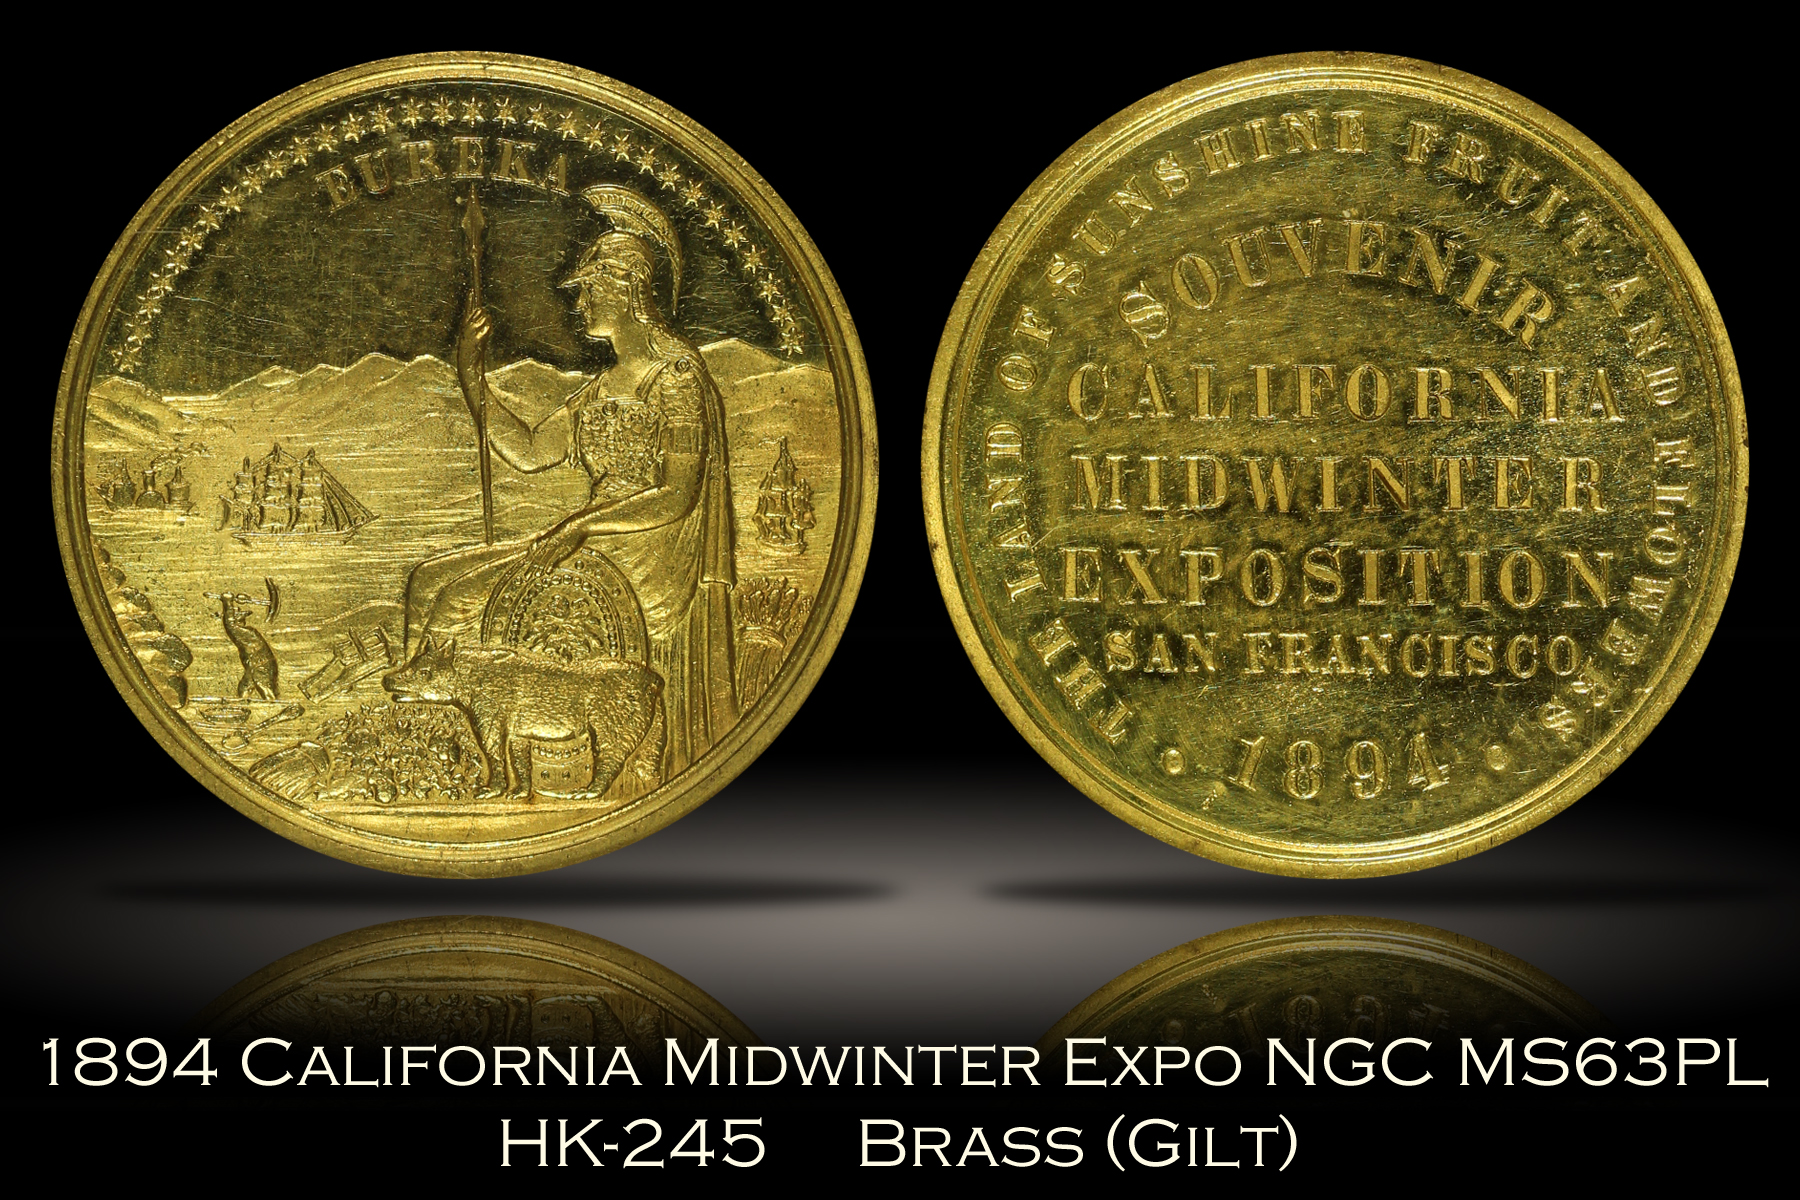 1894 California Midwinter Expo Medal HK-245 NGC MS63PL